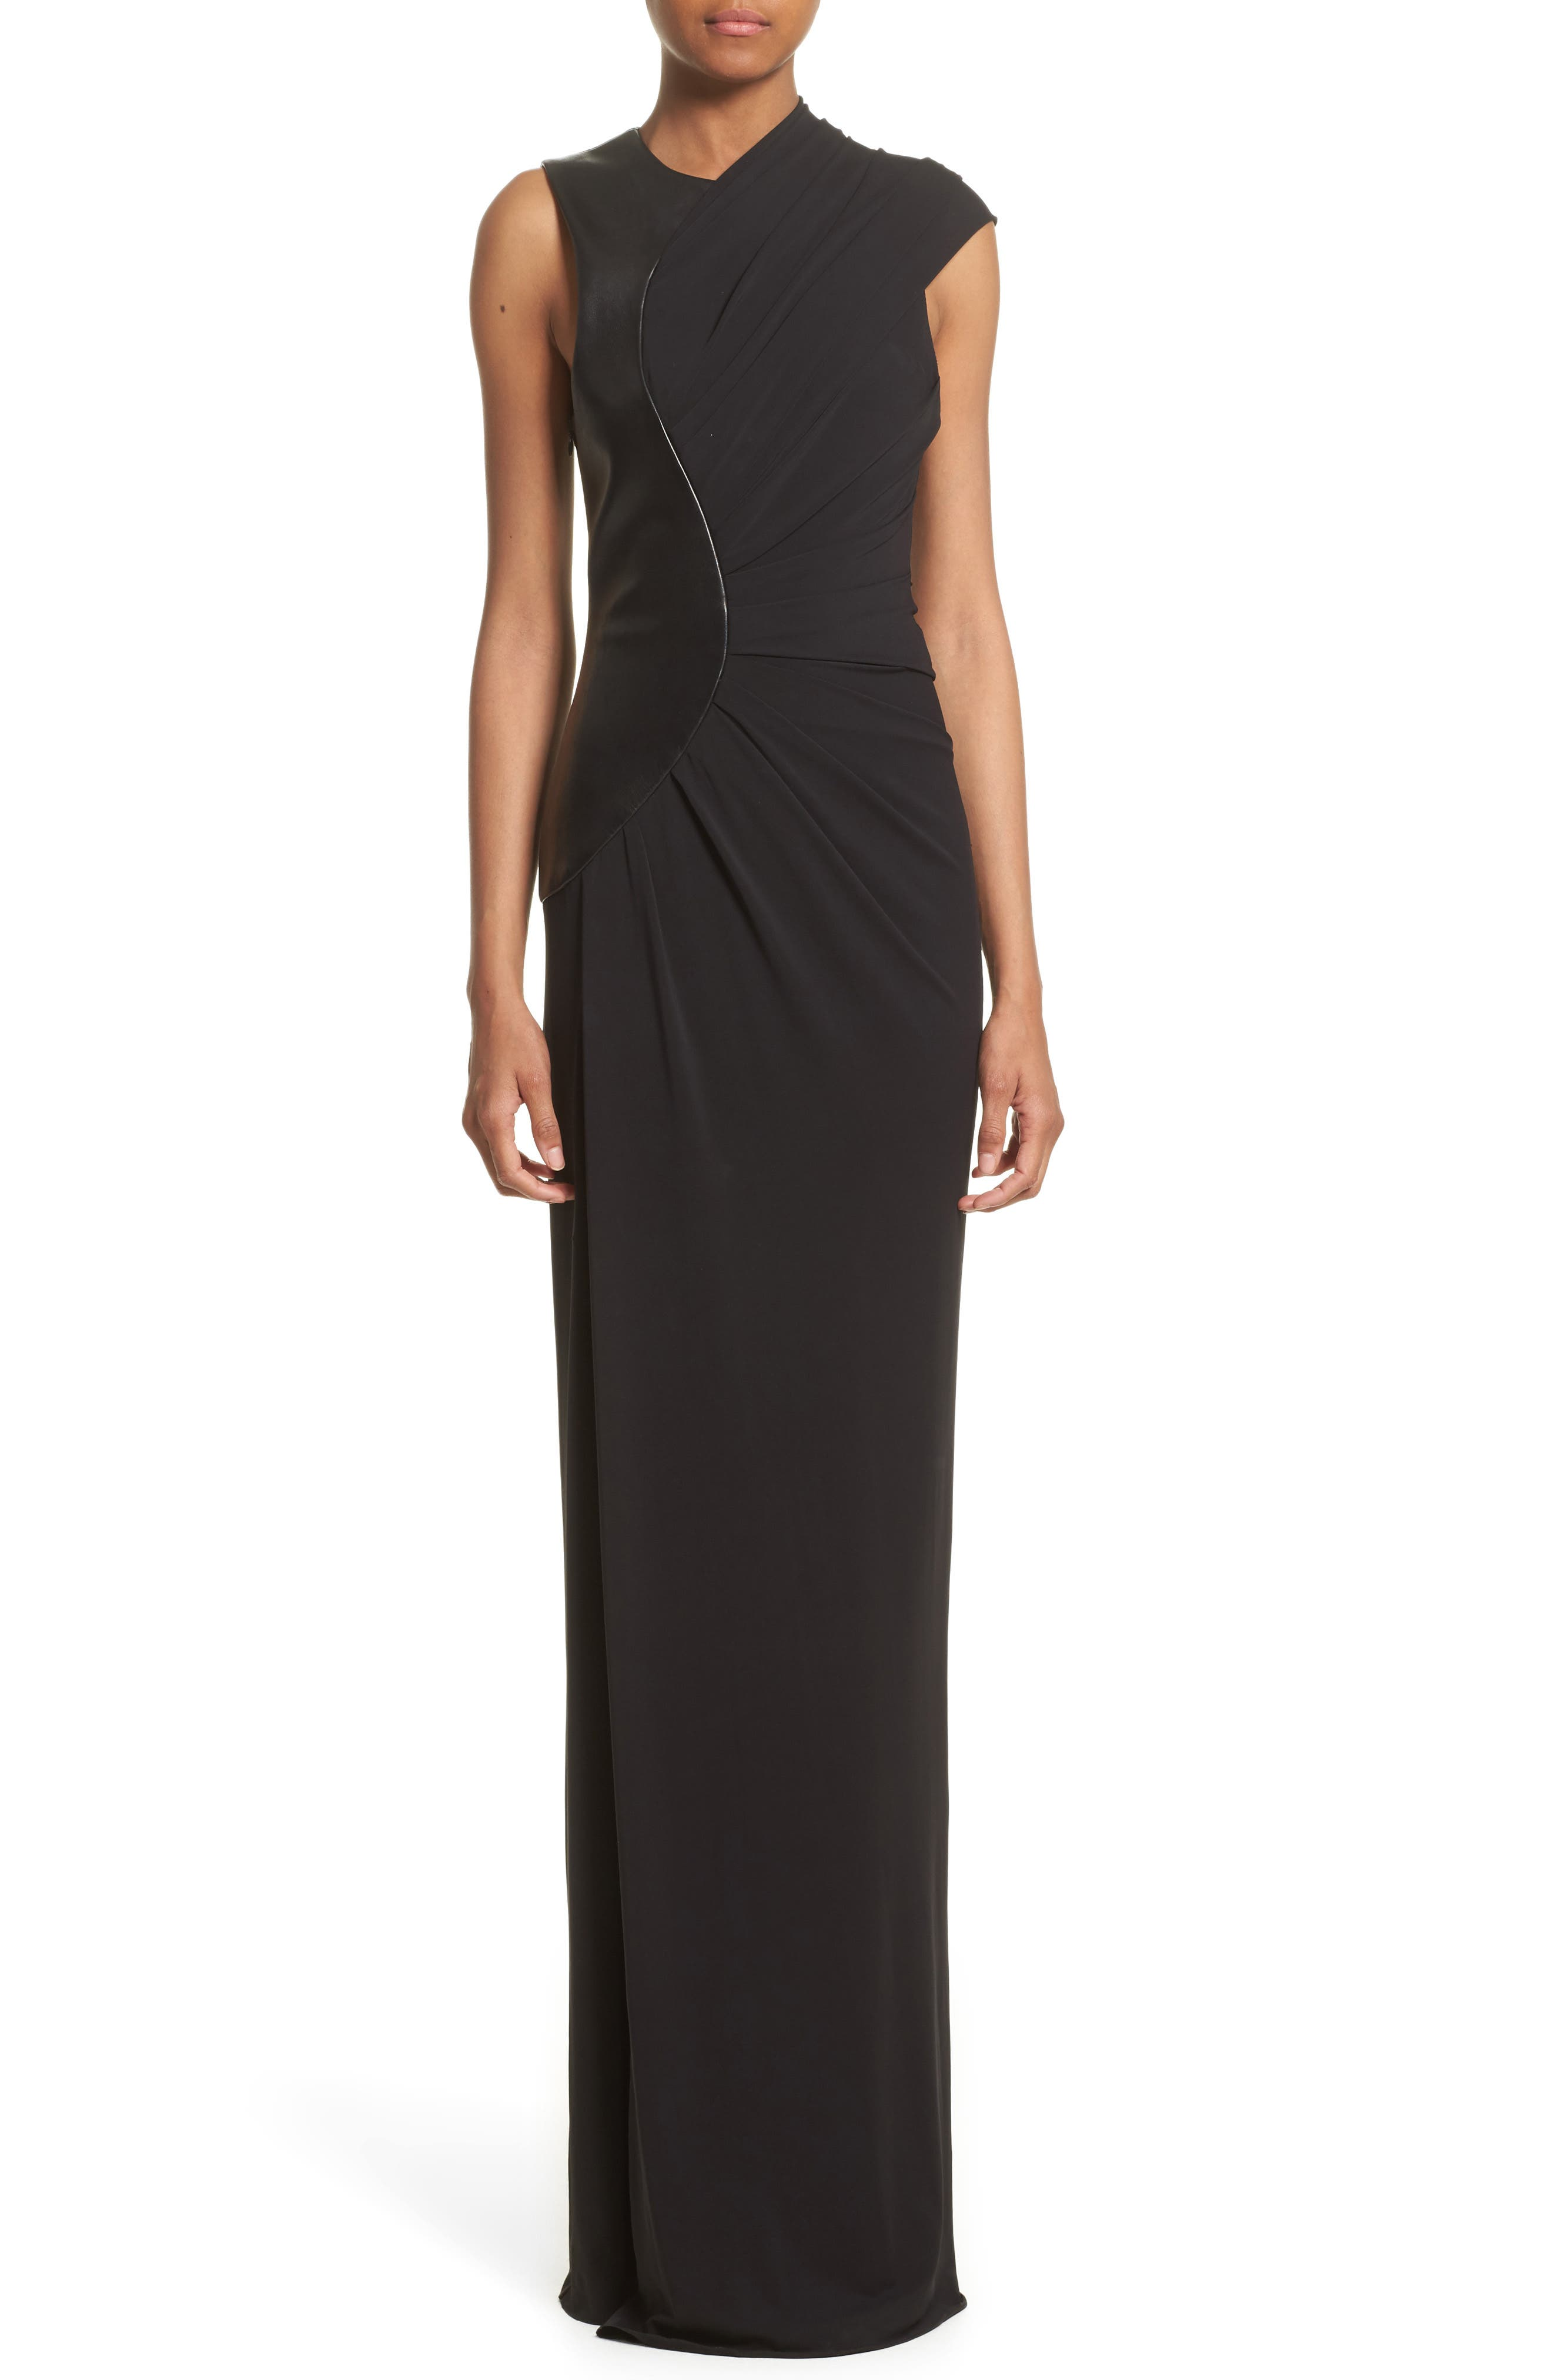 Alternate Image 1 Selected - Alexander Wang Draped Jersey & Leather Gown